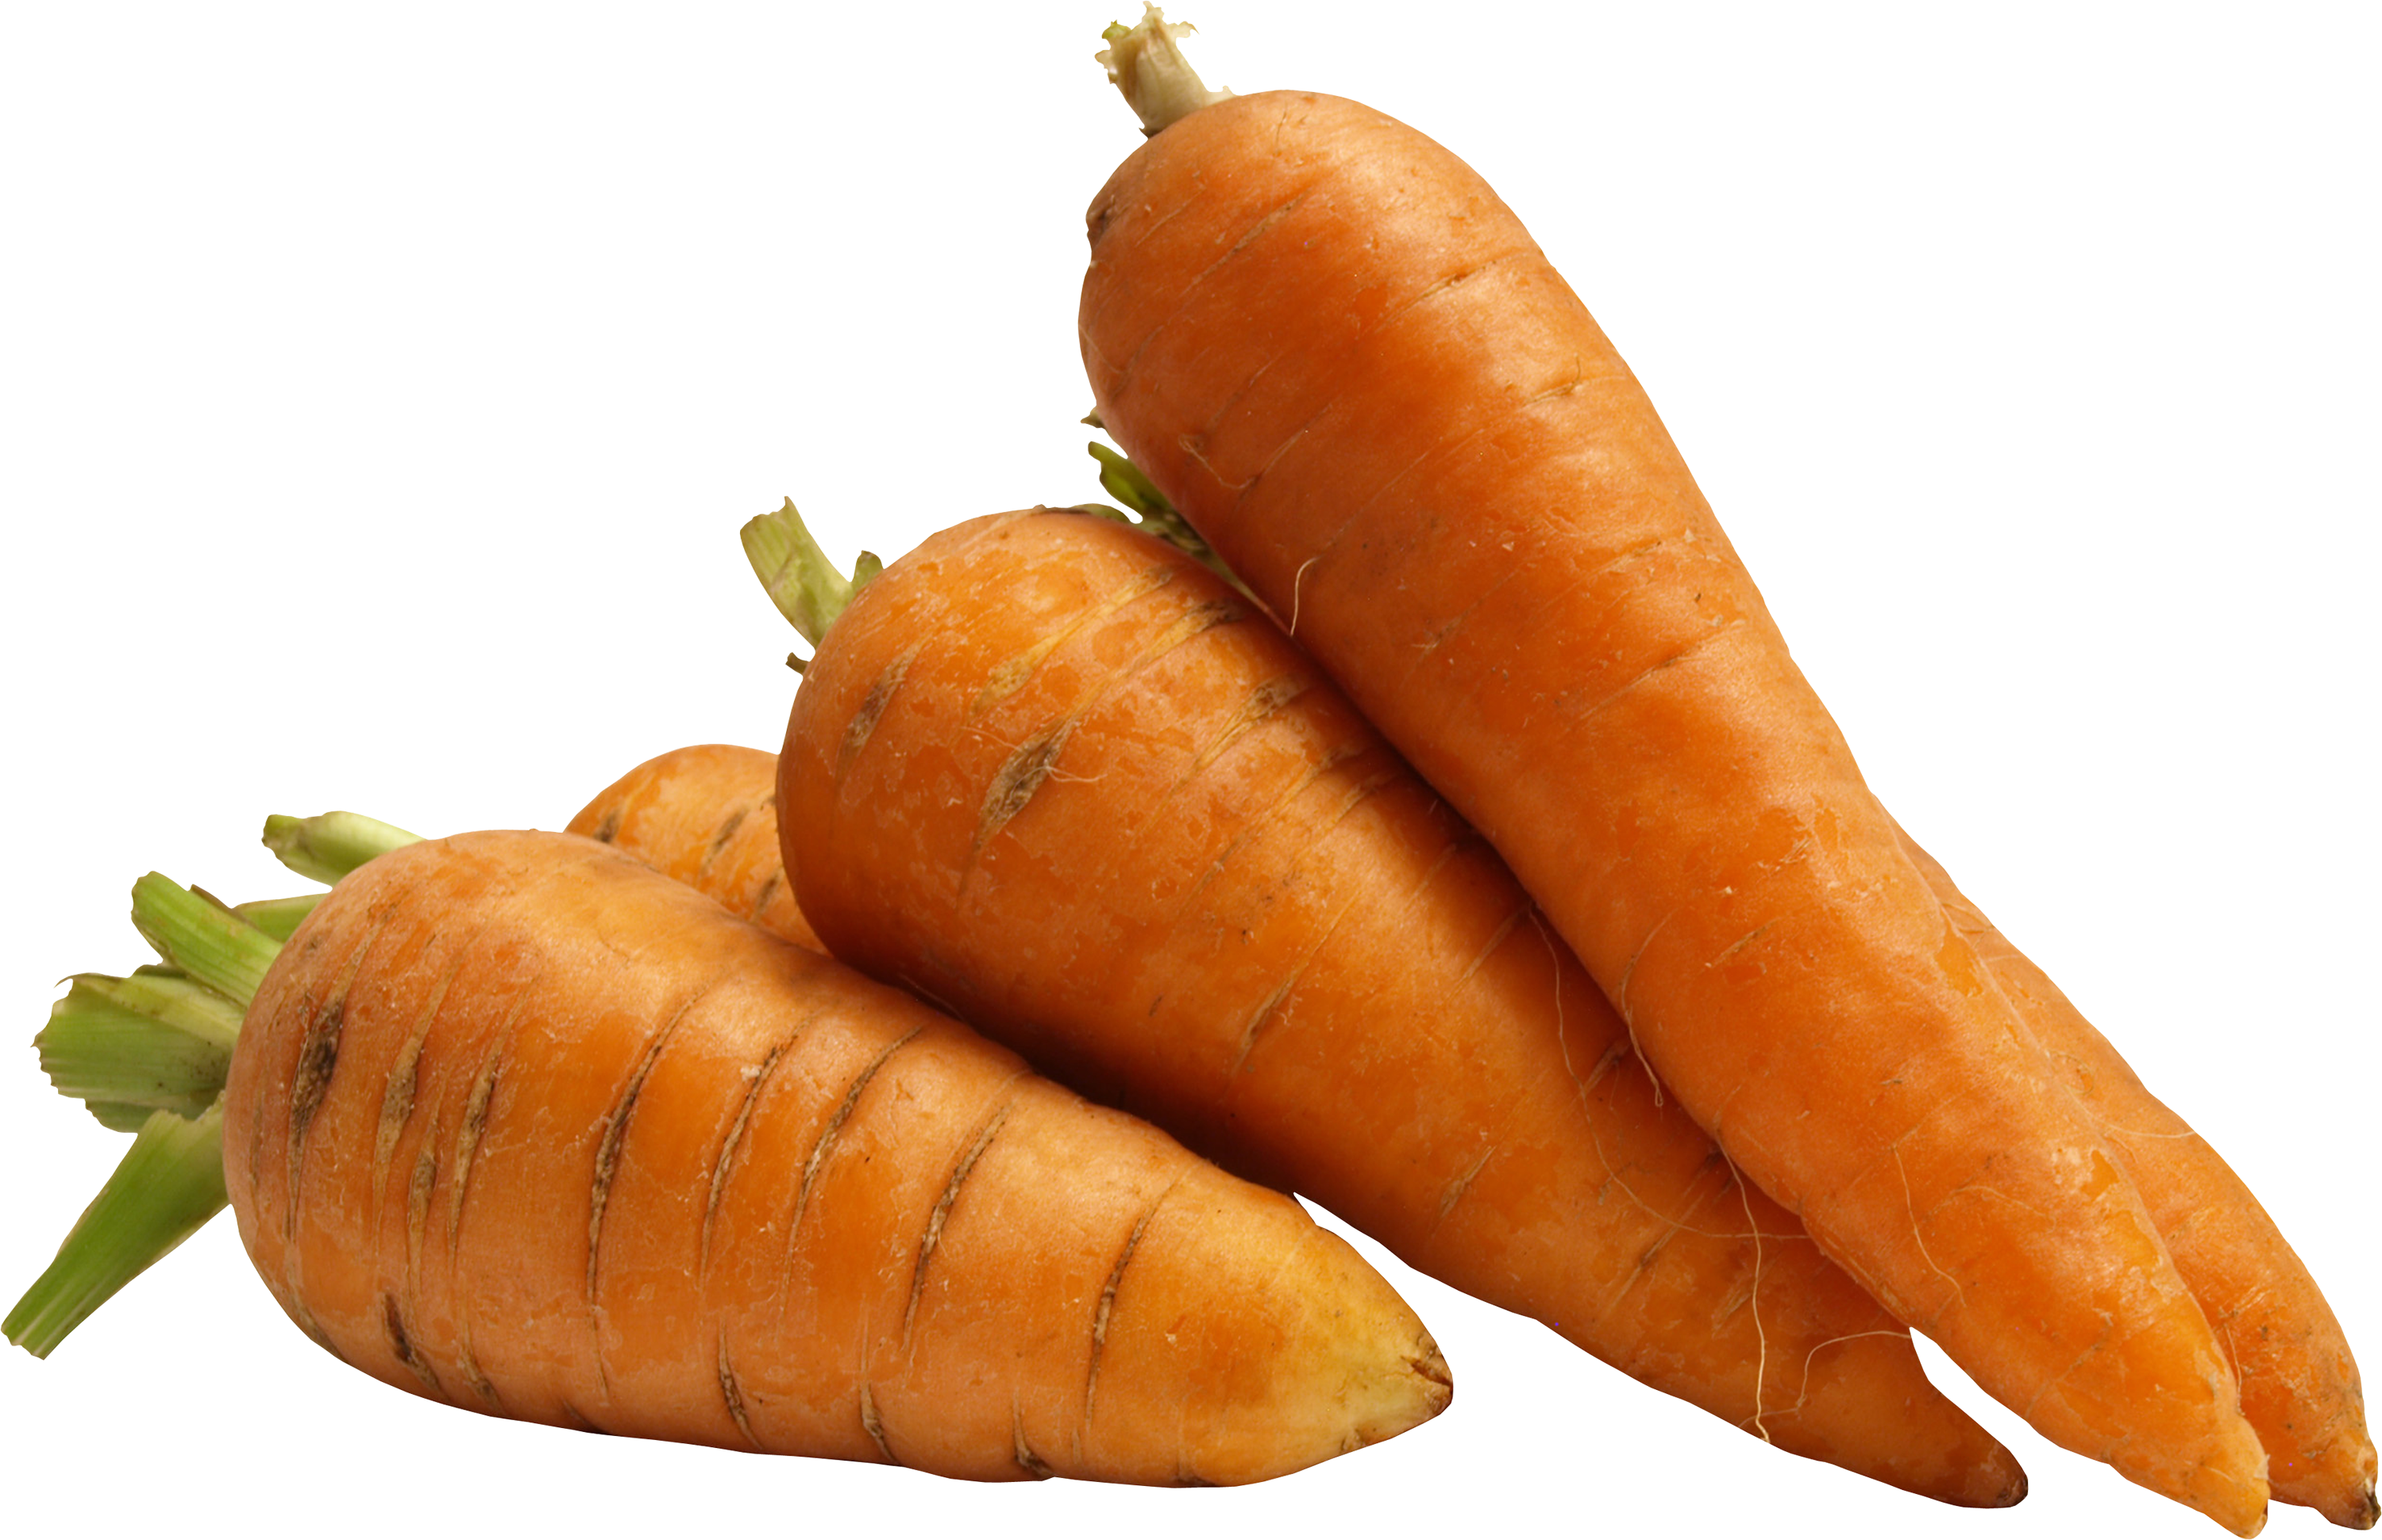 clipart library stock Carrot PNG Image